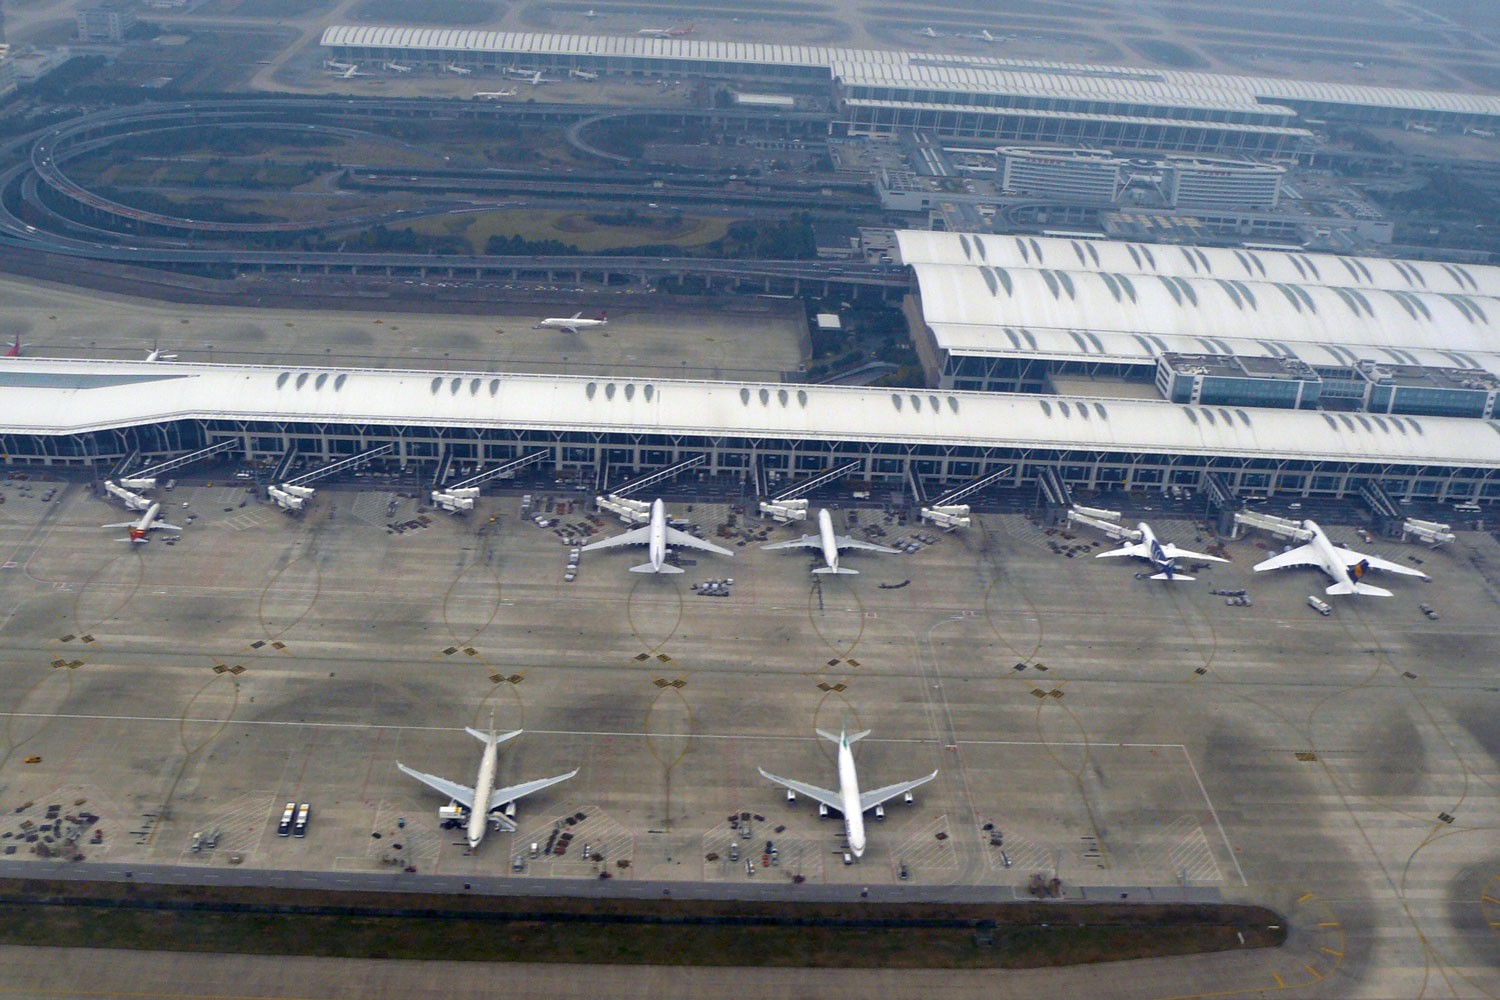 Shanghai Pudong Airport spotting report by Henry Tenby